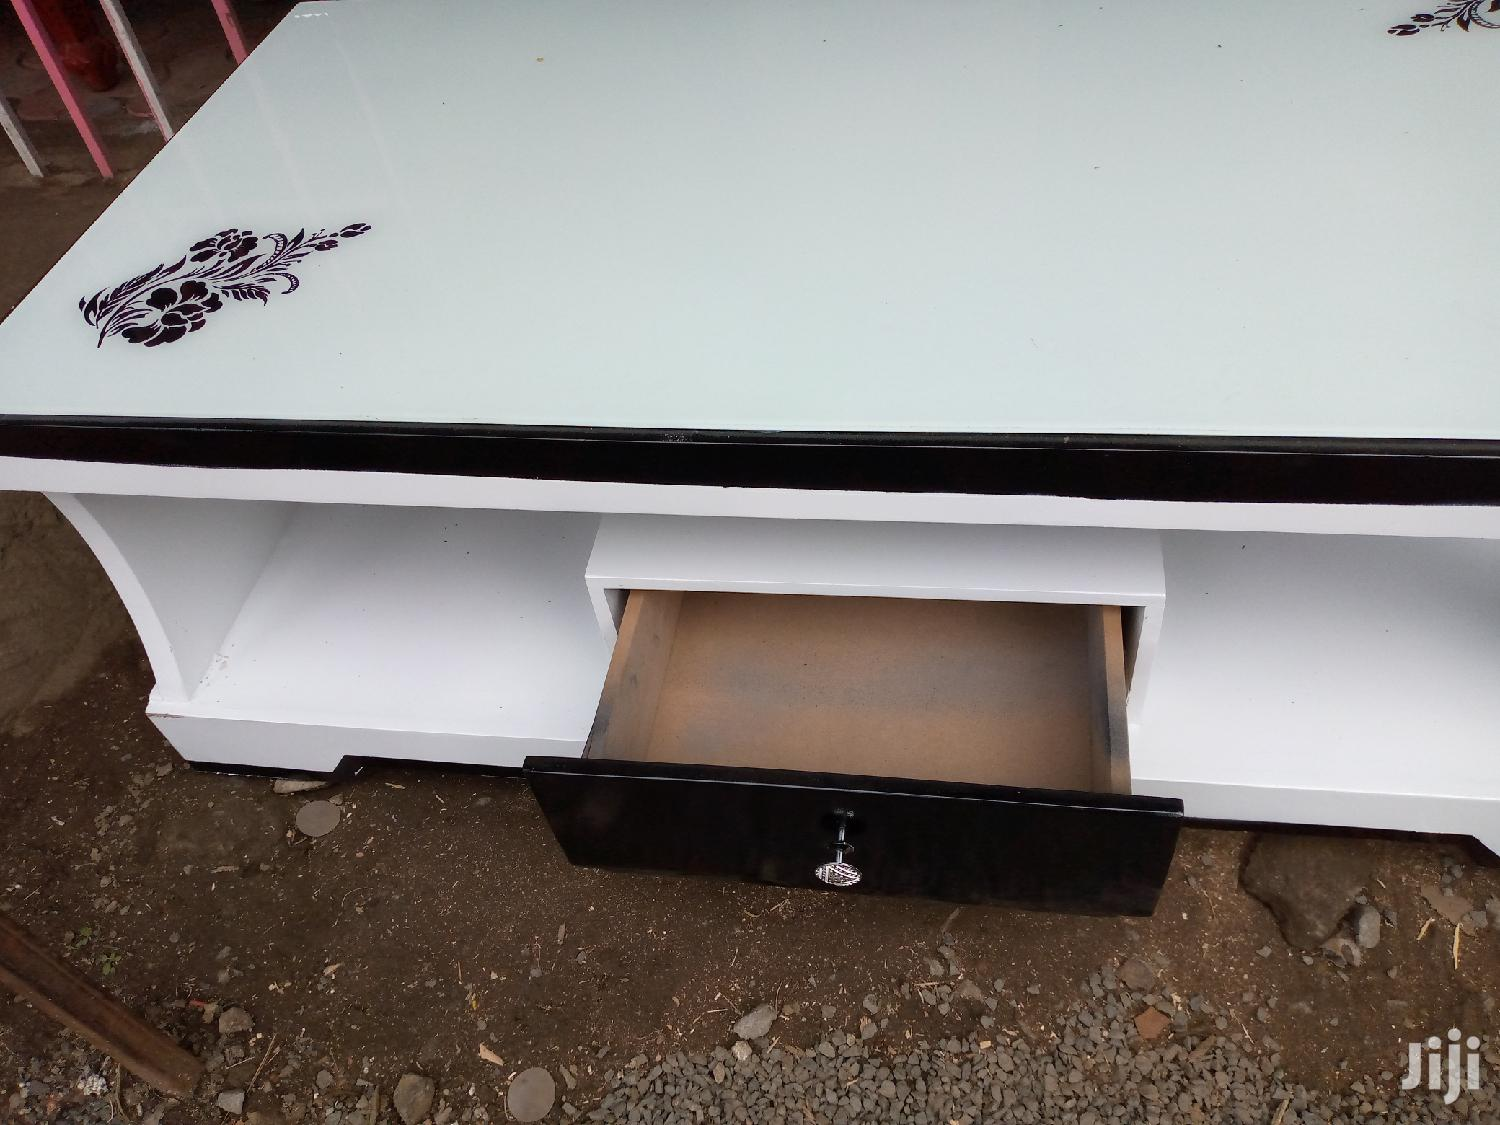 White Floral Design Coffee Table And One Stool With Glass | Furniture for sale in Umoja II, Nairobi, Kenya